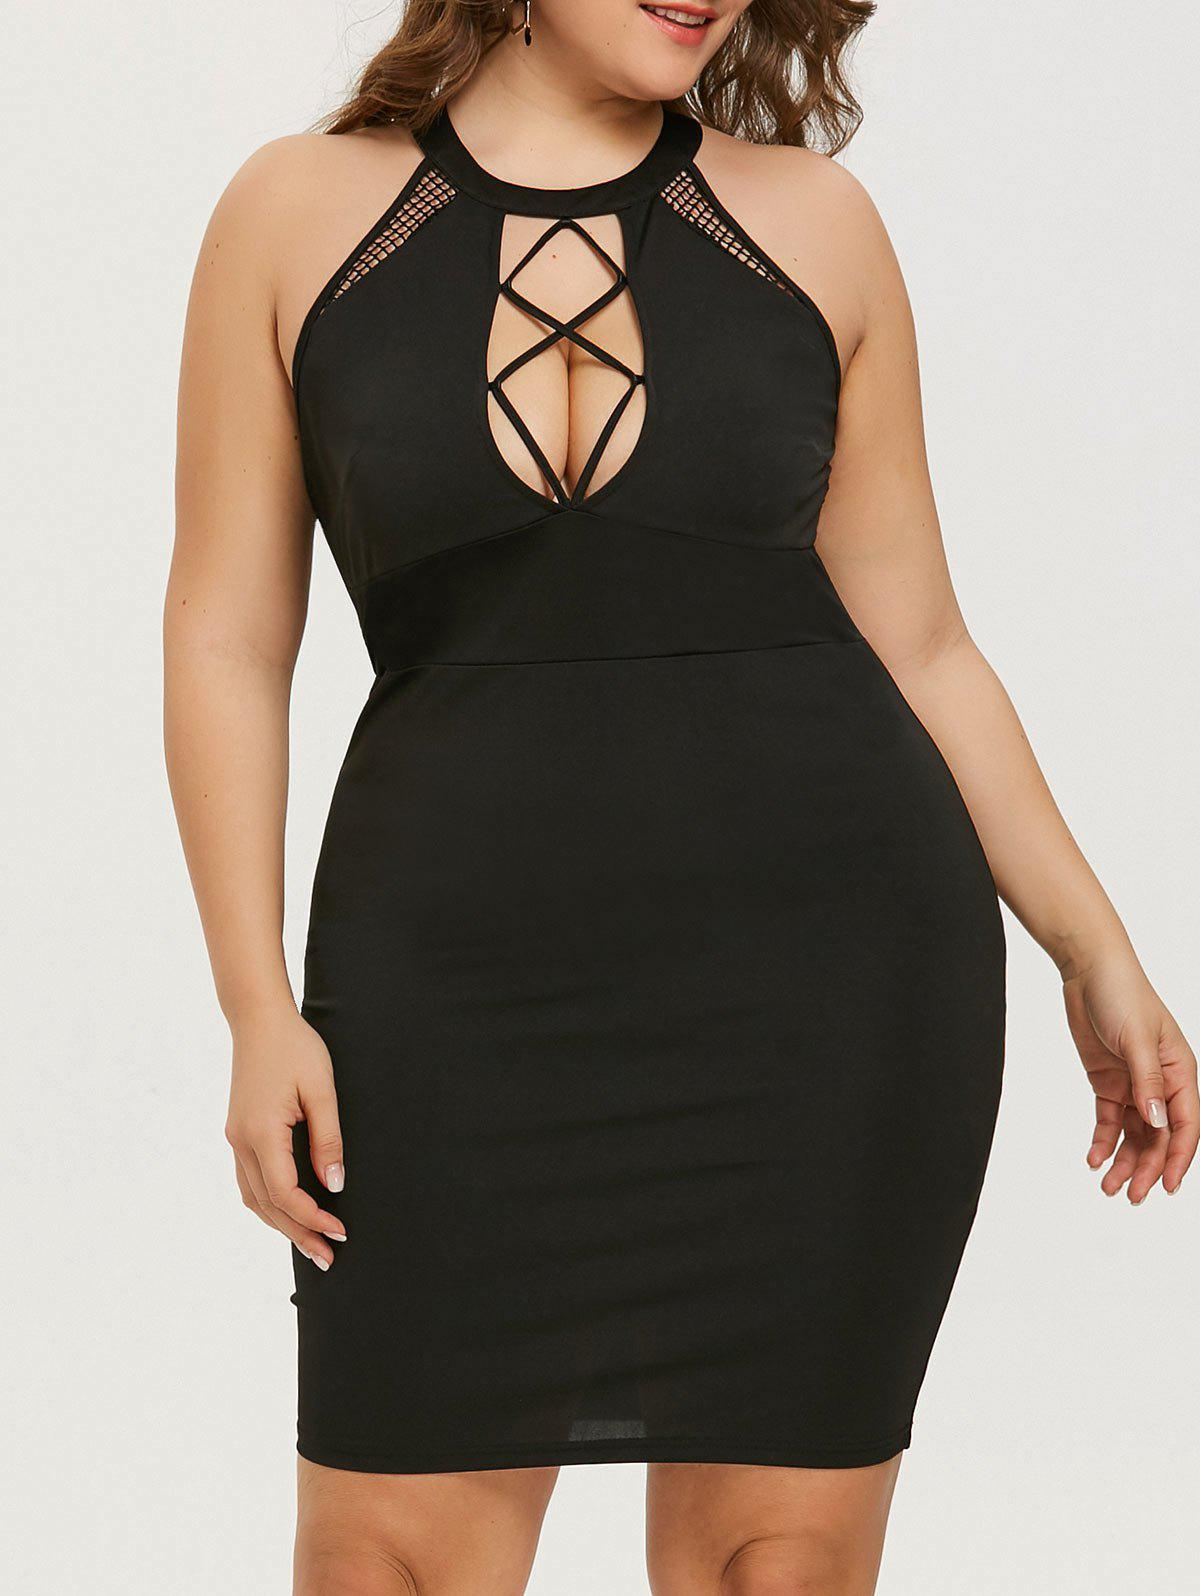 New Mini Plus Size Cut Out Bodycon Dress